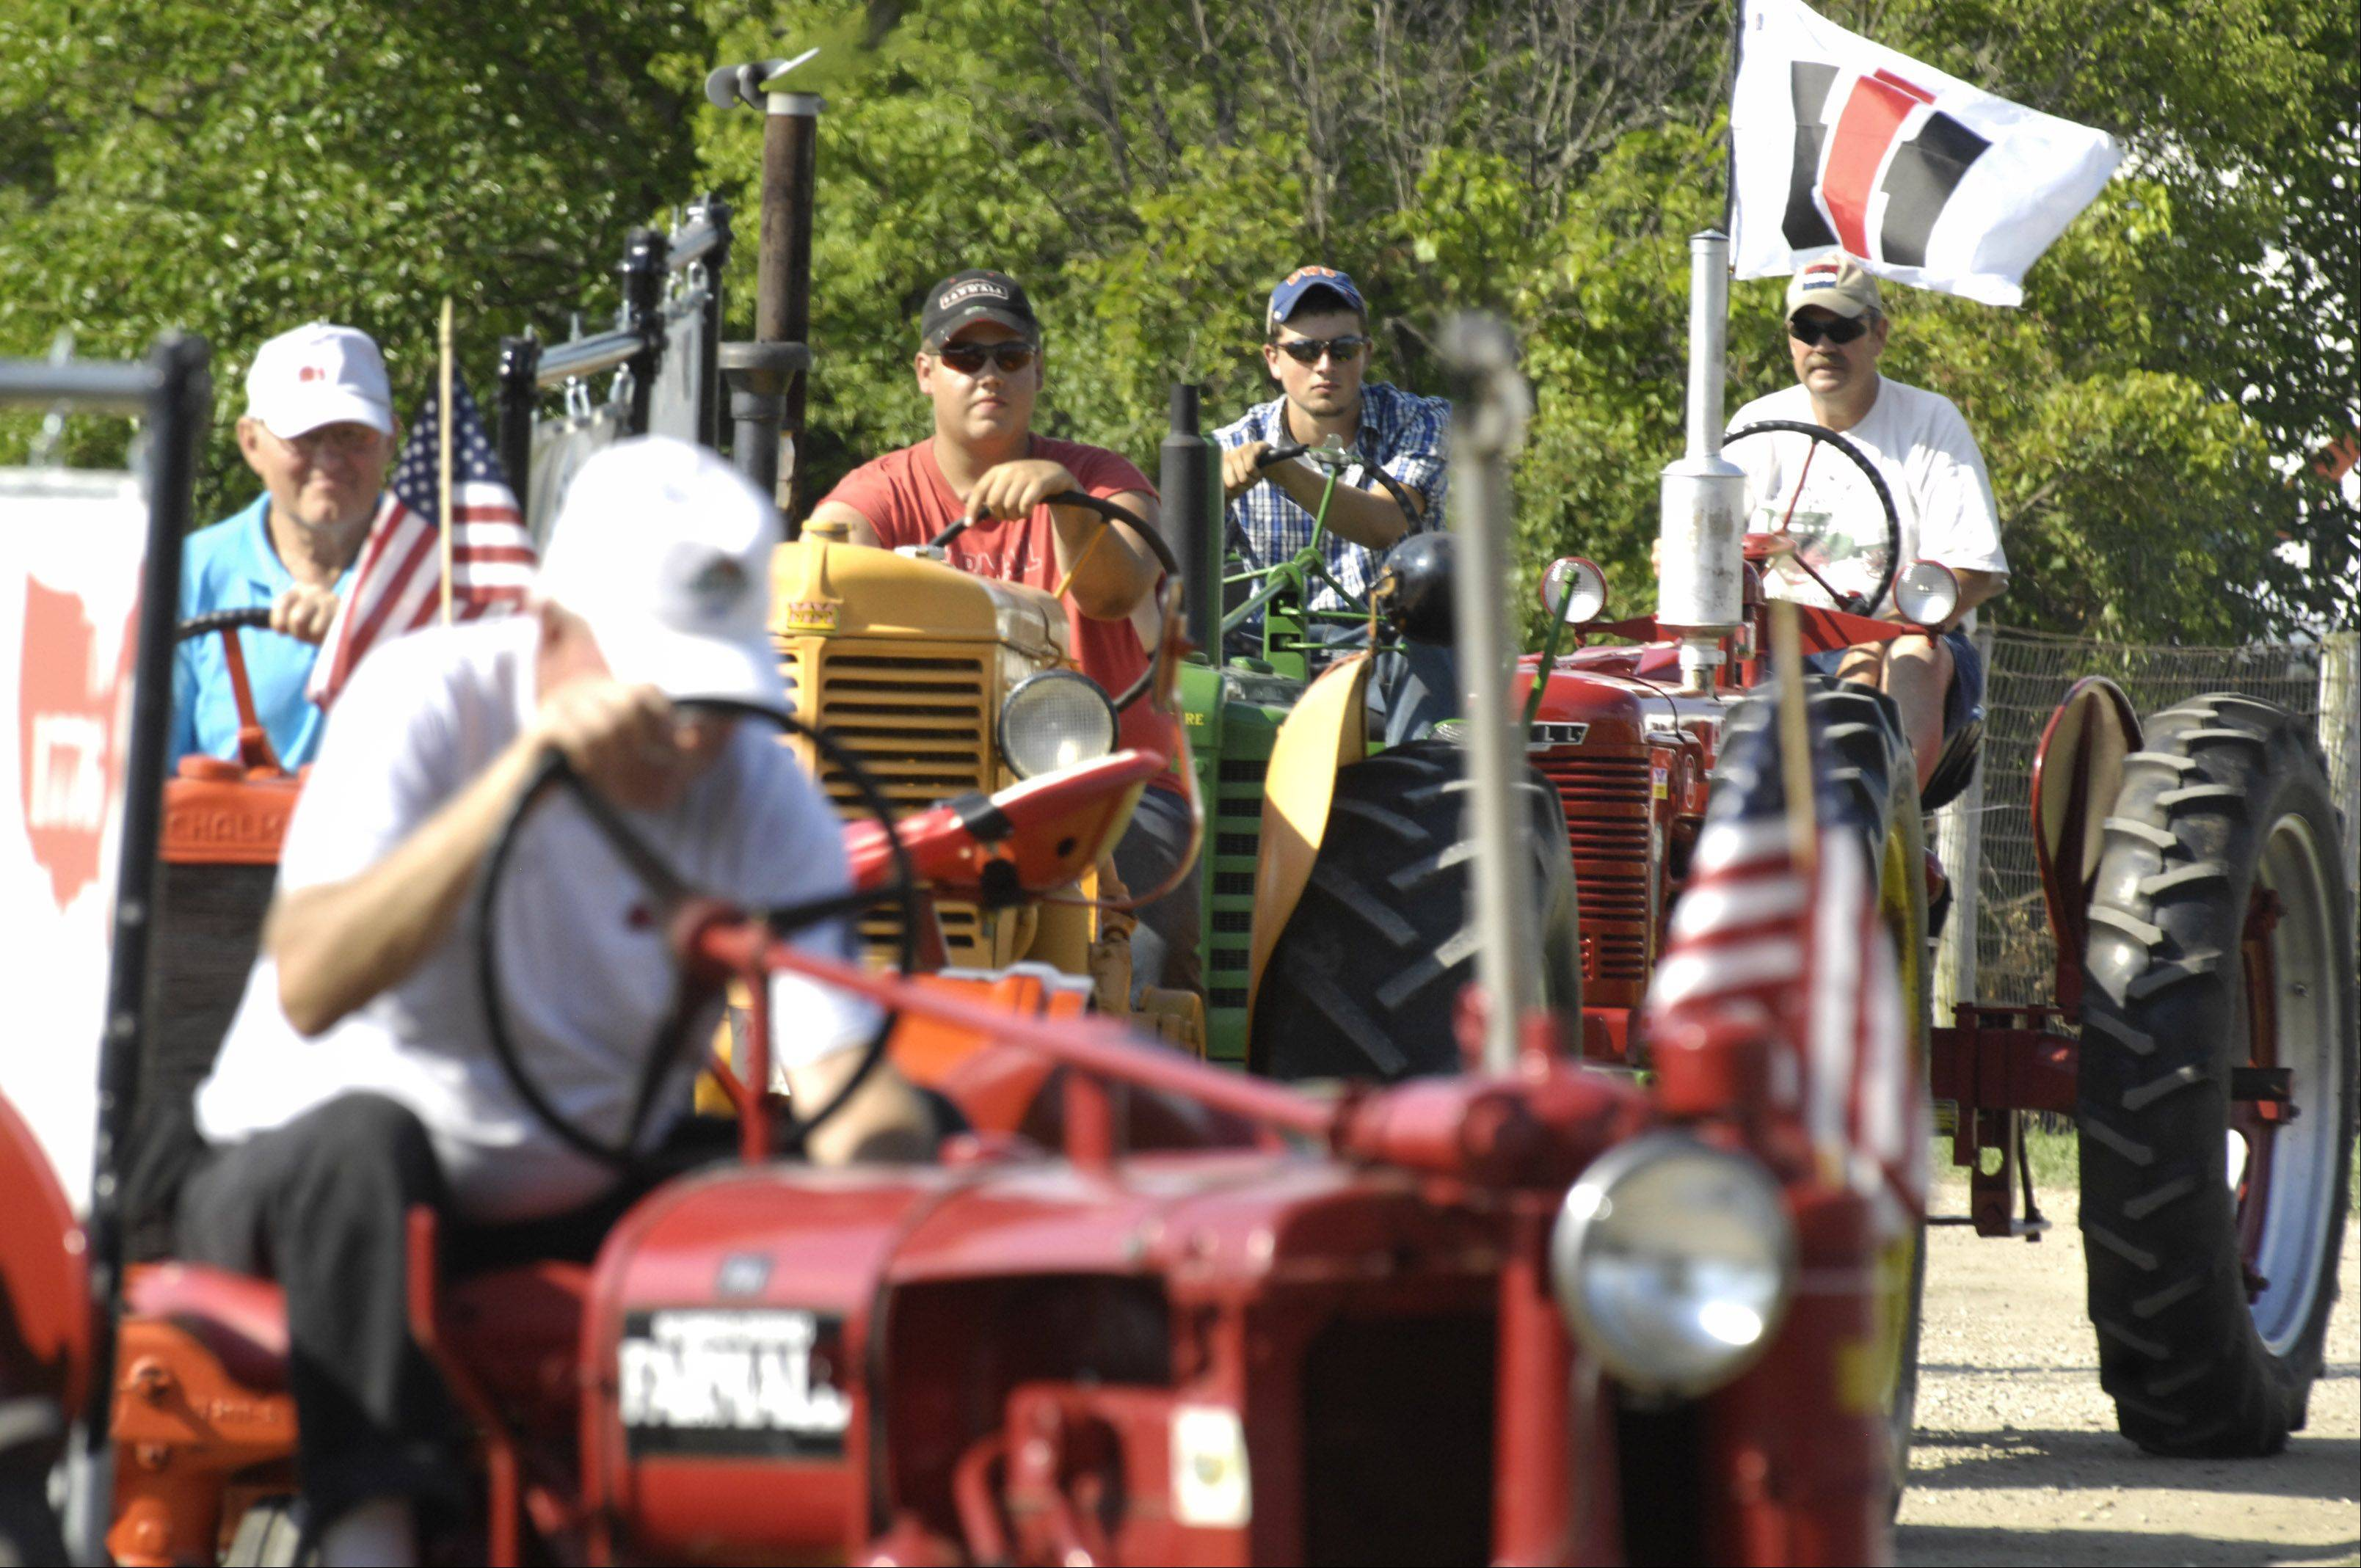 Fifteen antique tractors paraded around last year's McHenry County Fair in Woodstock. Antique machinery is an important part of the fair.